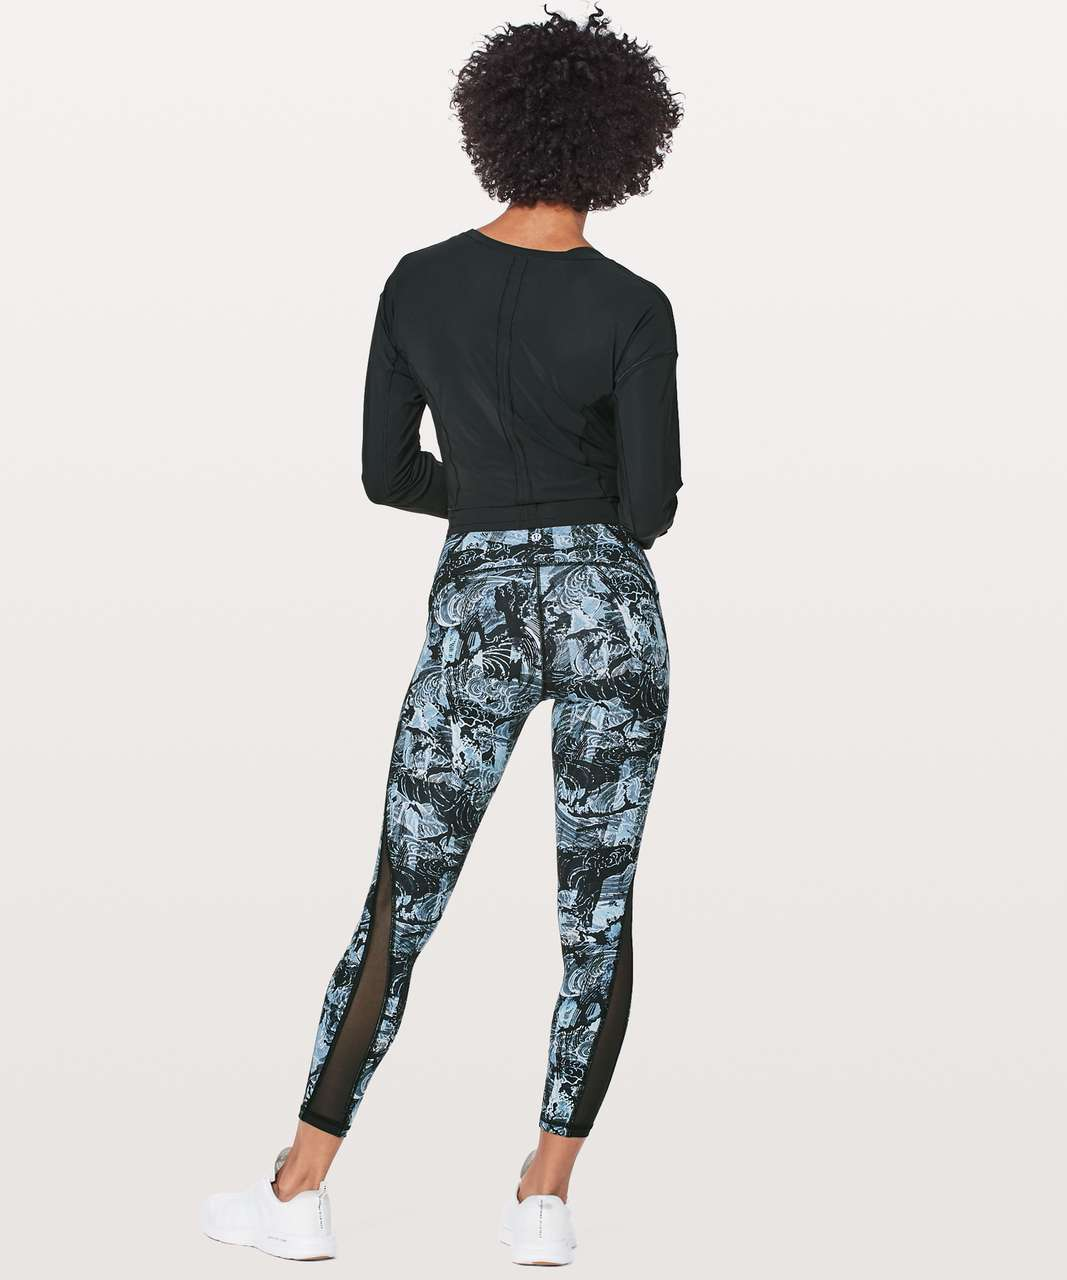 "Lululemon Train Times 7/8 Pant *25"" - Eternal Wave Starlight Black / Black"